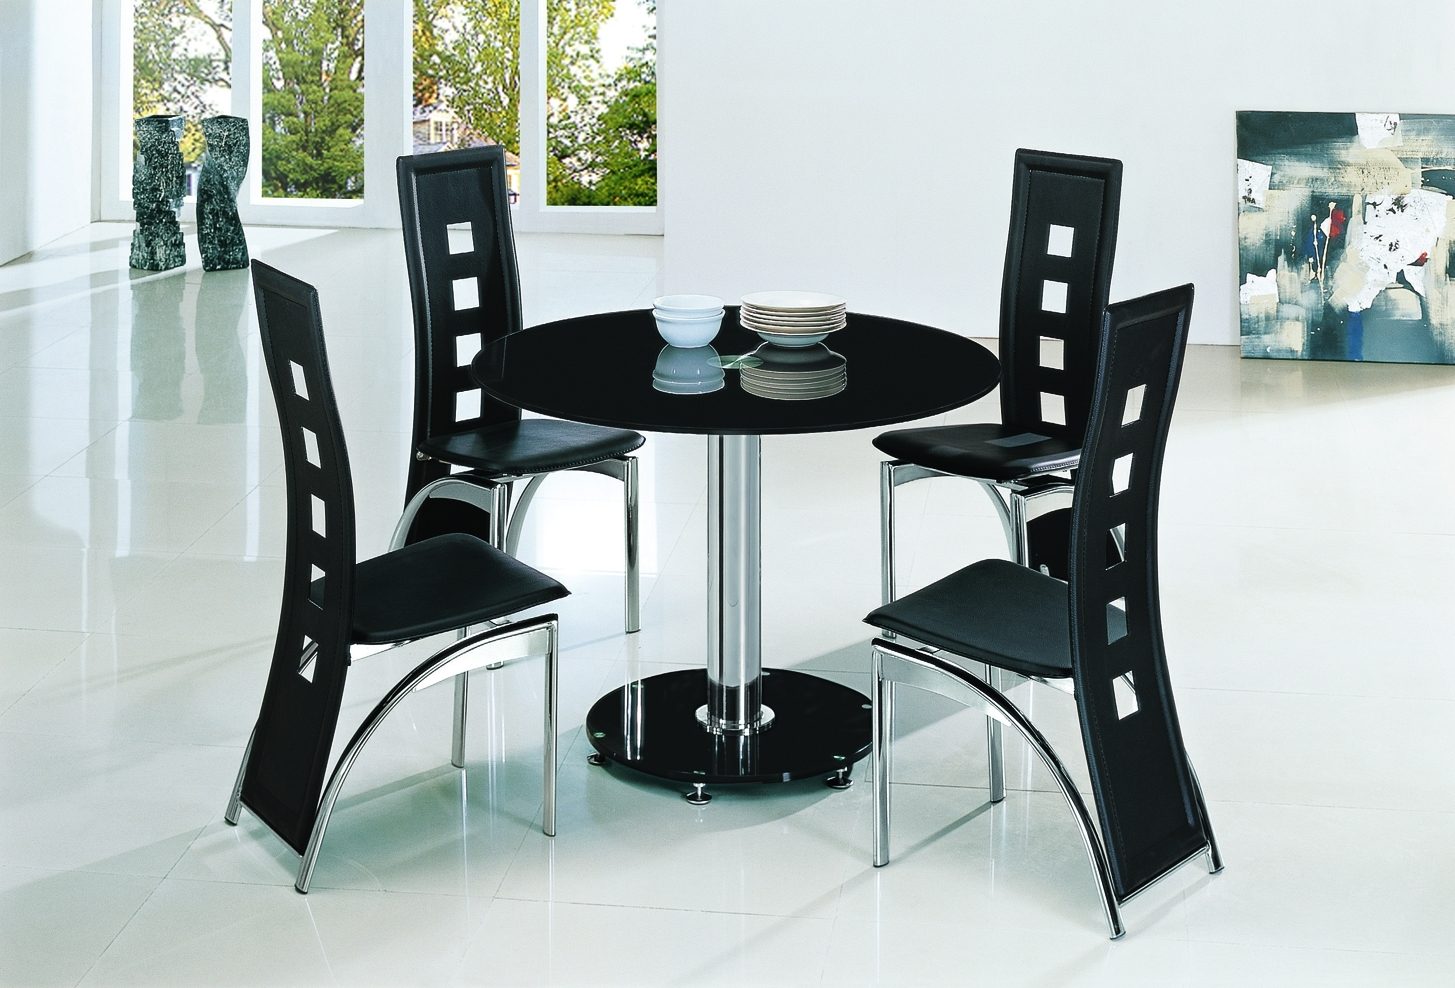 Planet Black Round Glass Dining Table With Ashley Chairs – Implex Inside Well Known Black Glass Dining Tables (View 23 of 25)